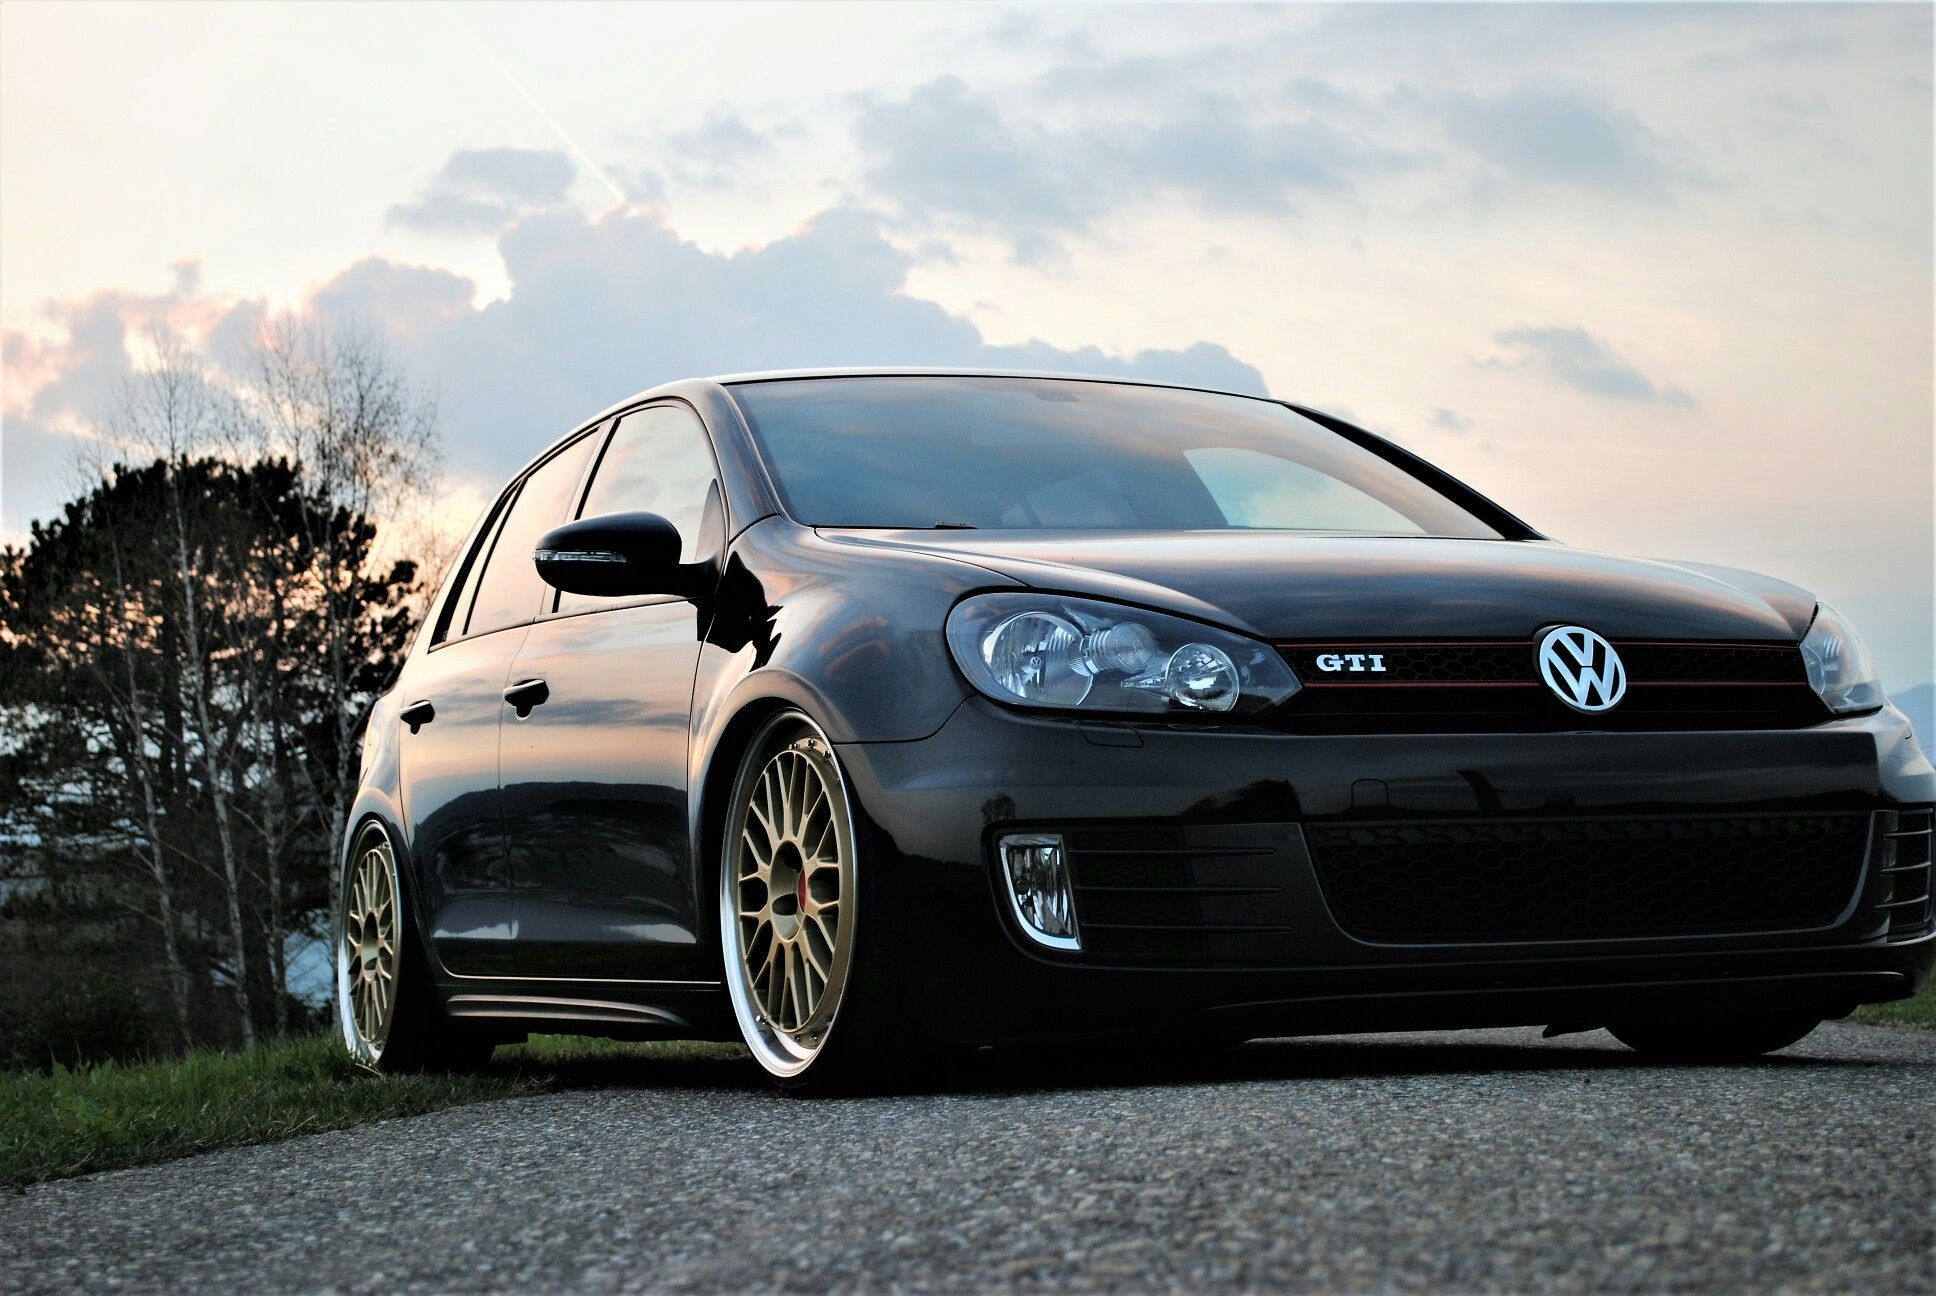 Vw Golf 6 Gti Tuning Shooting By Lili S Carshoot Link